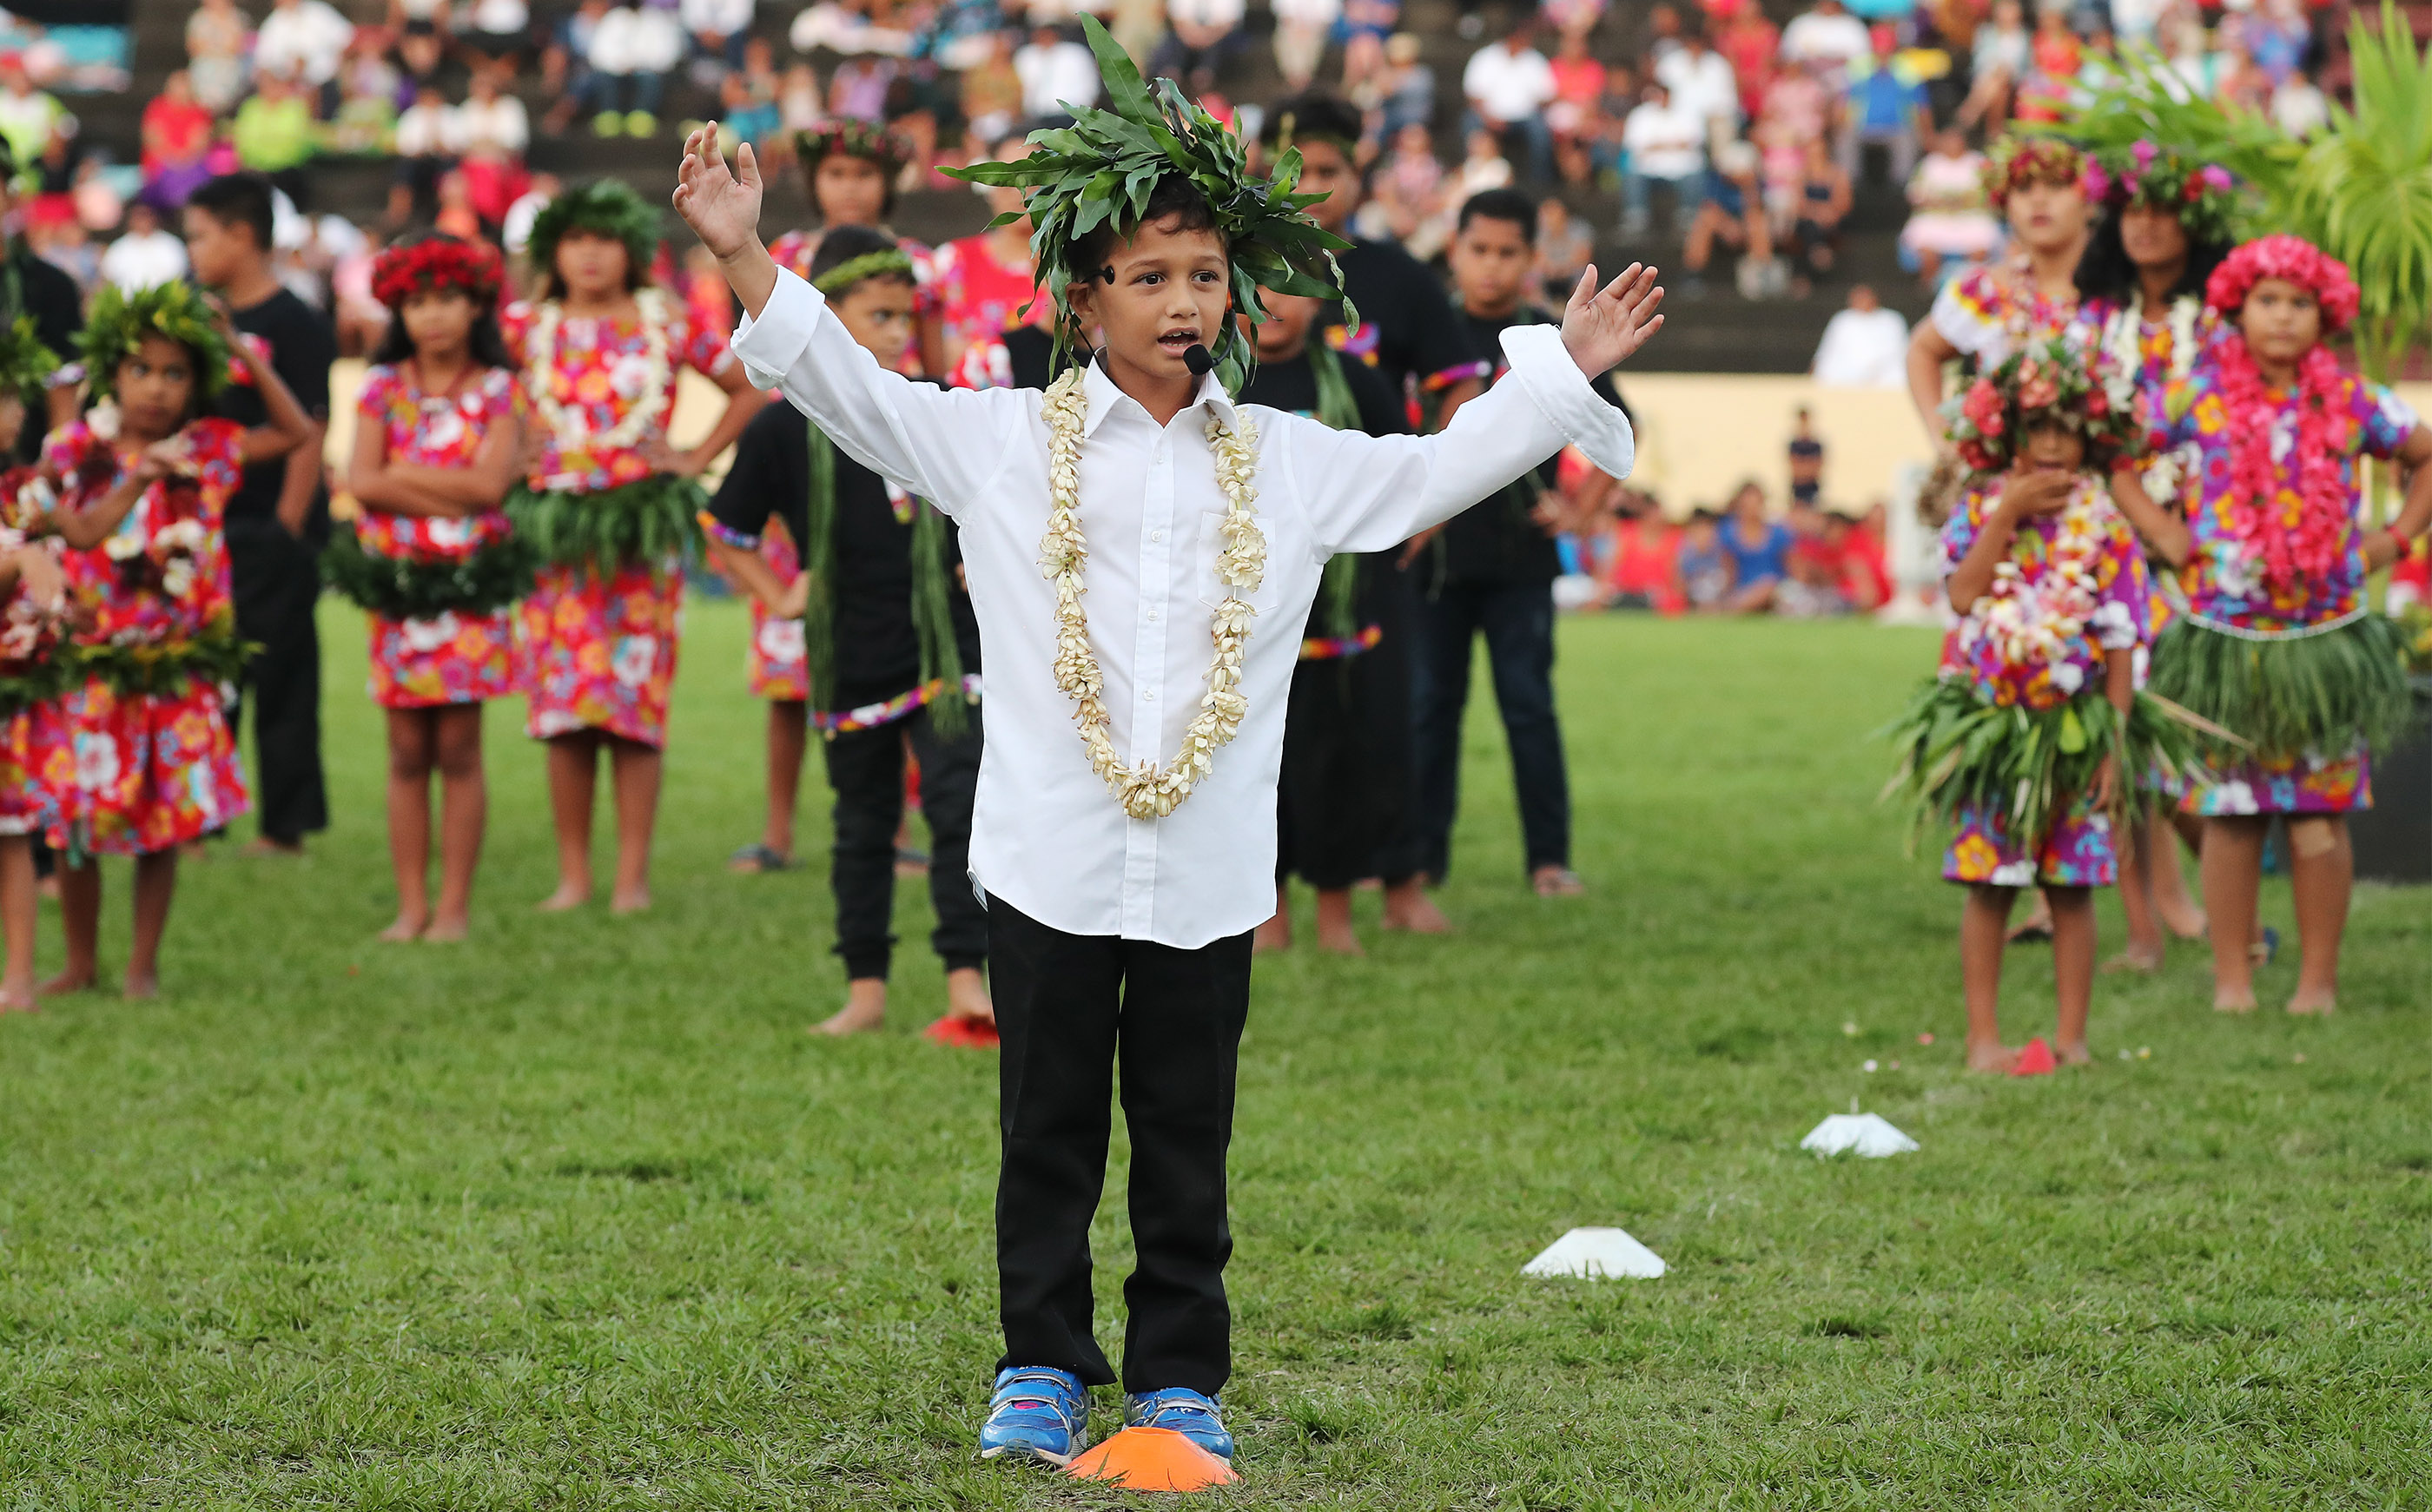 Performers entertain during a Tahiti cultural program for President Russell M. Nelson of The Church of Jesus Christ of Latter-day Saints in Papeete, Tahiti, on May 24, 2019.